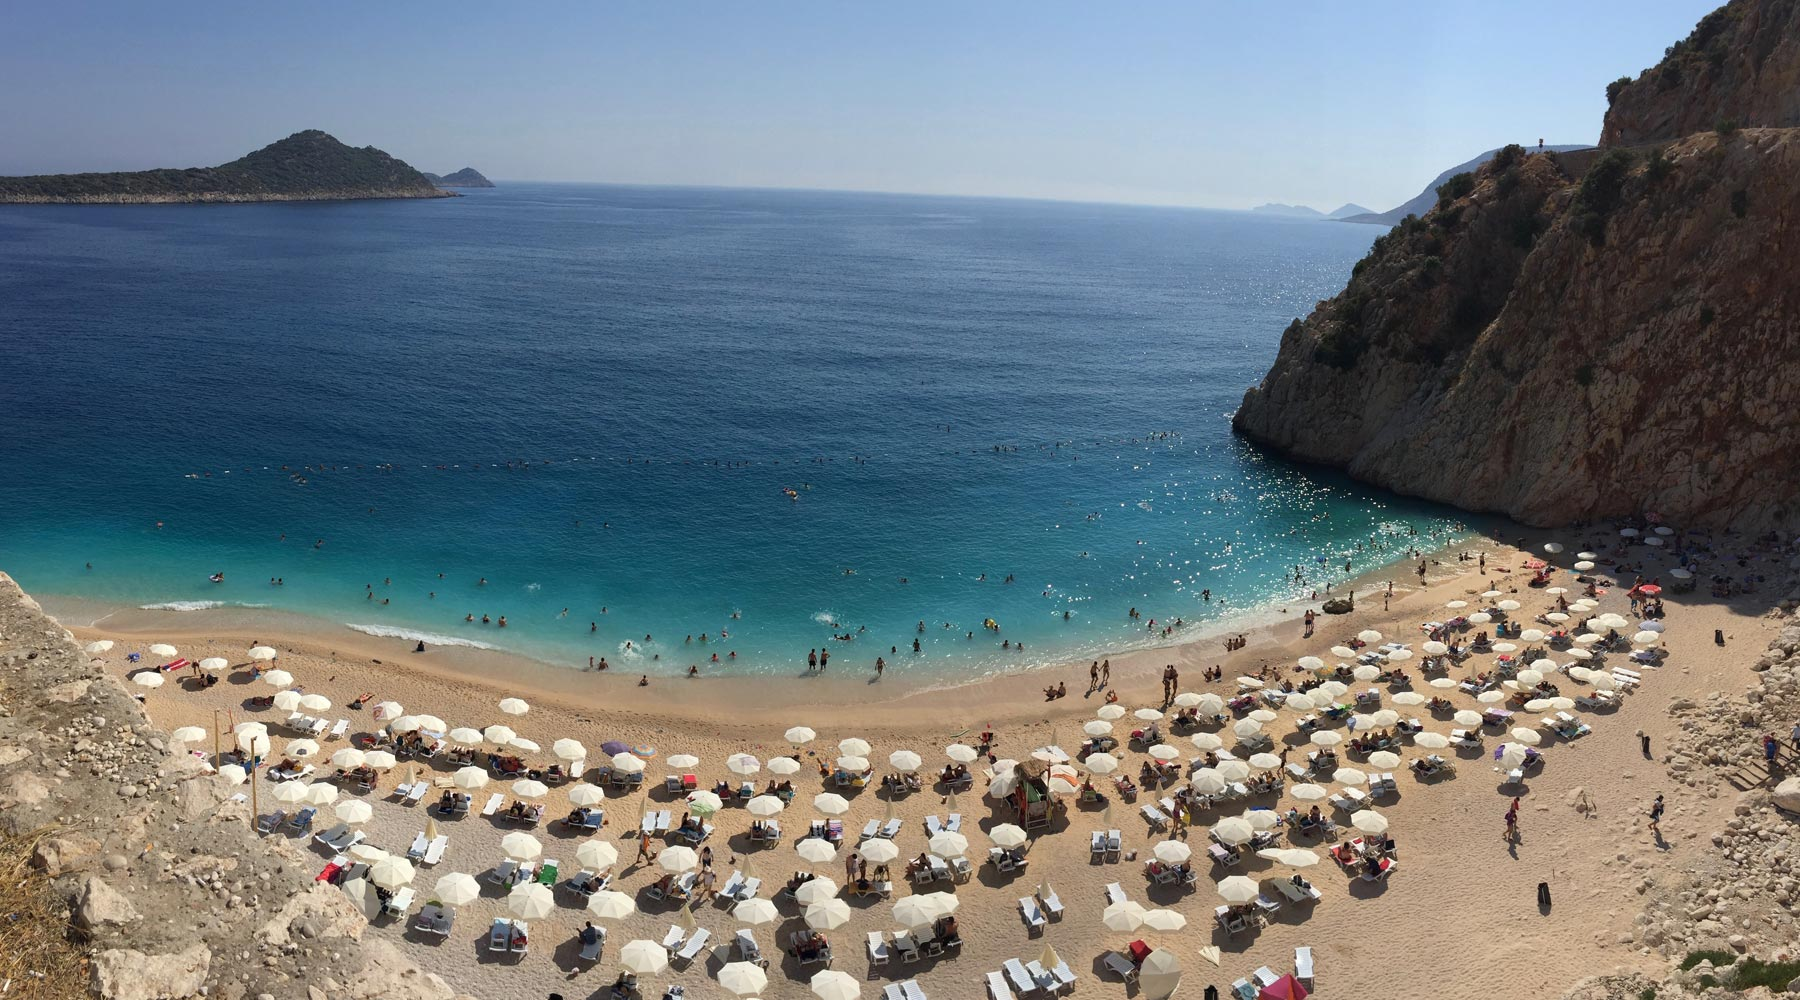 Kaputaş Beach – A Picturesque Beach in Kaş, Antalya, Turkey